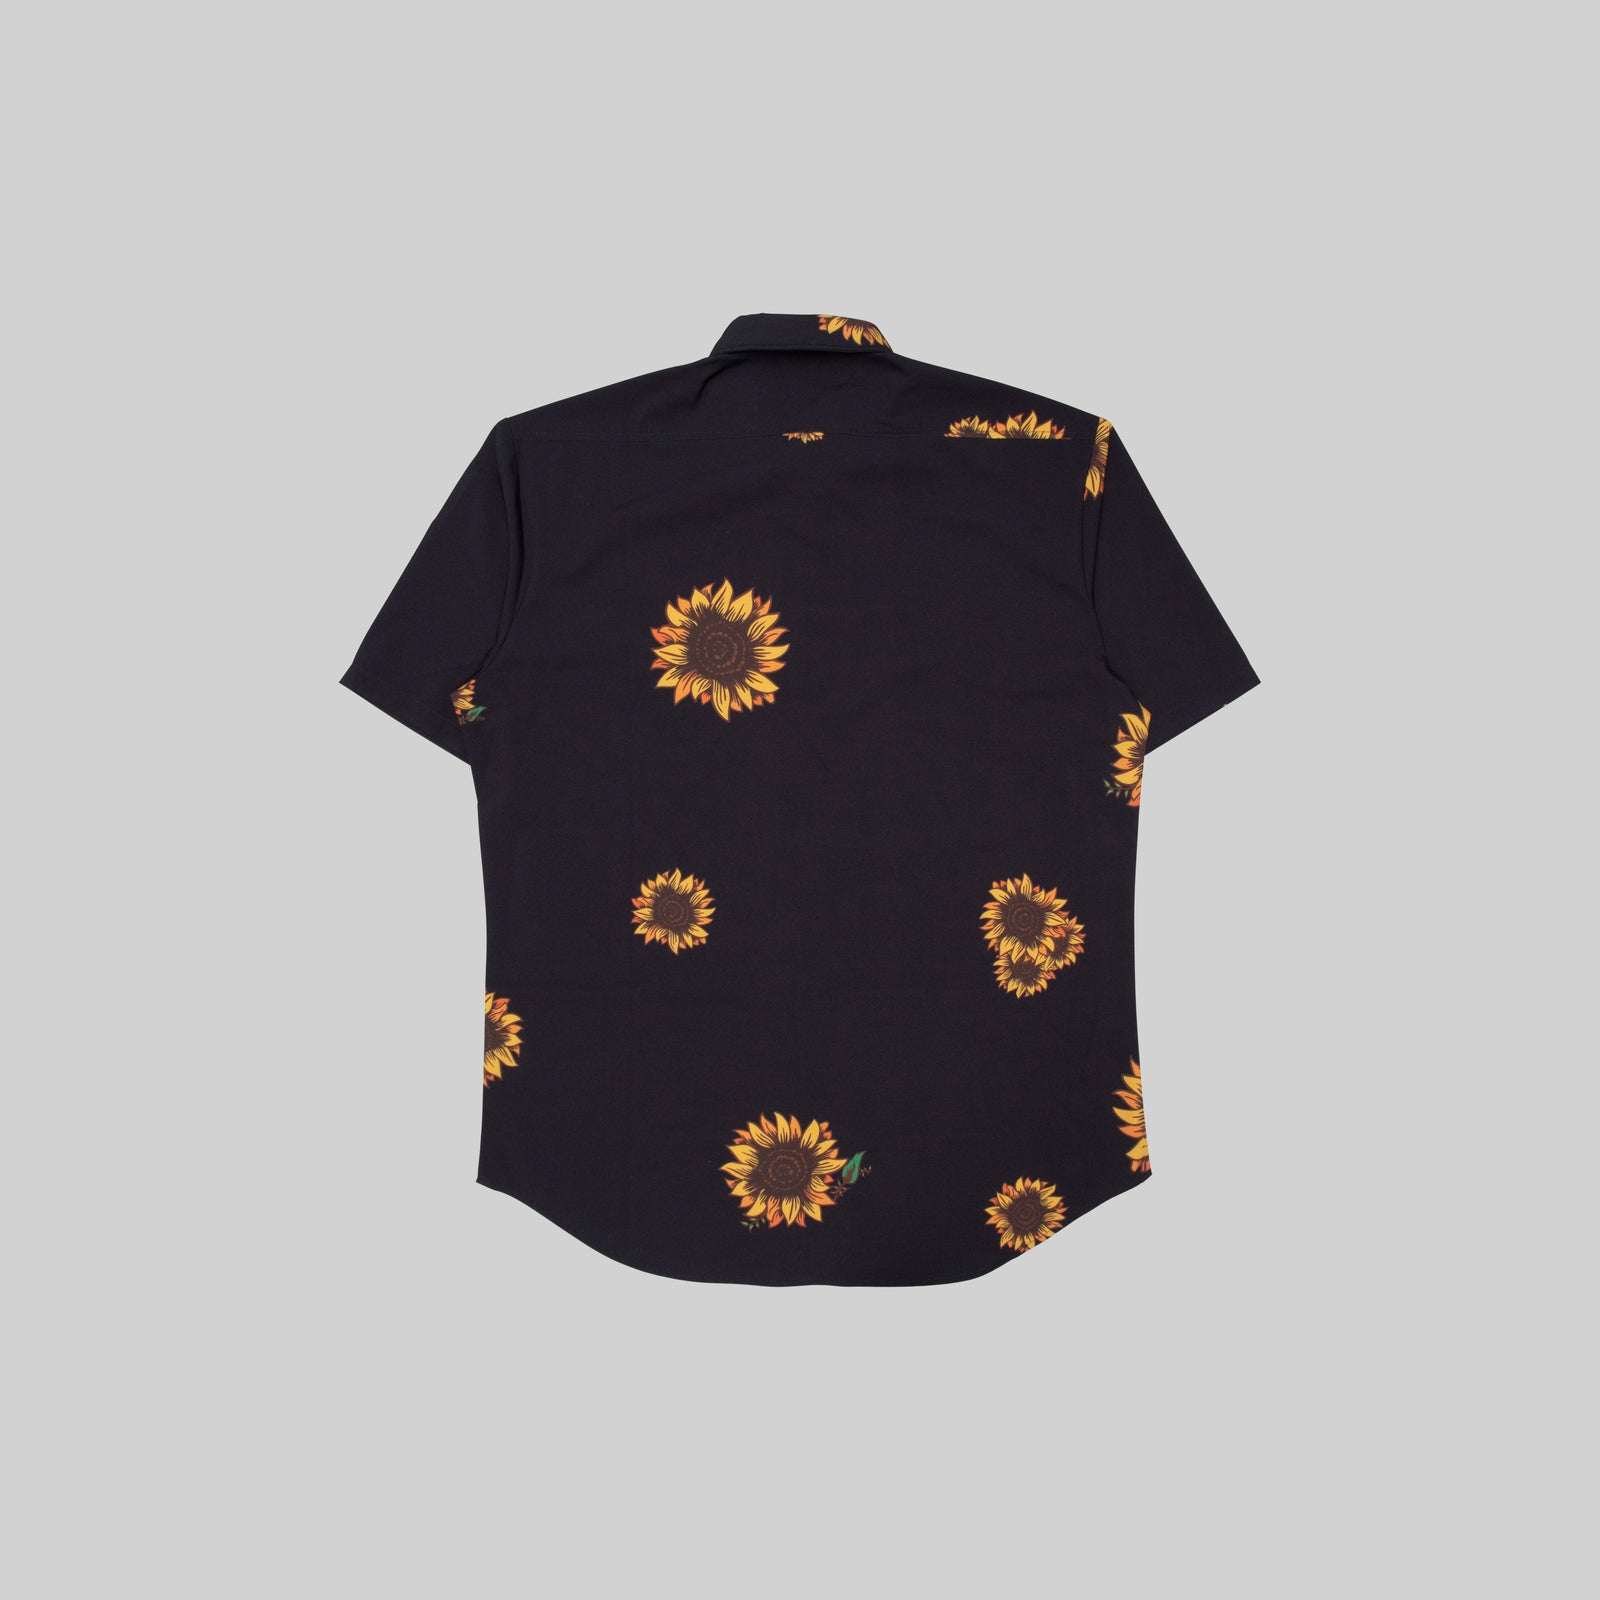 Mens Sunflower SS Shirt Black